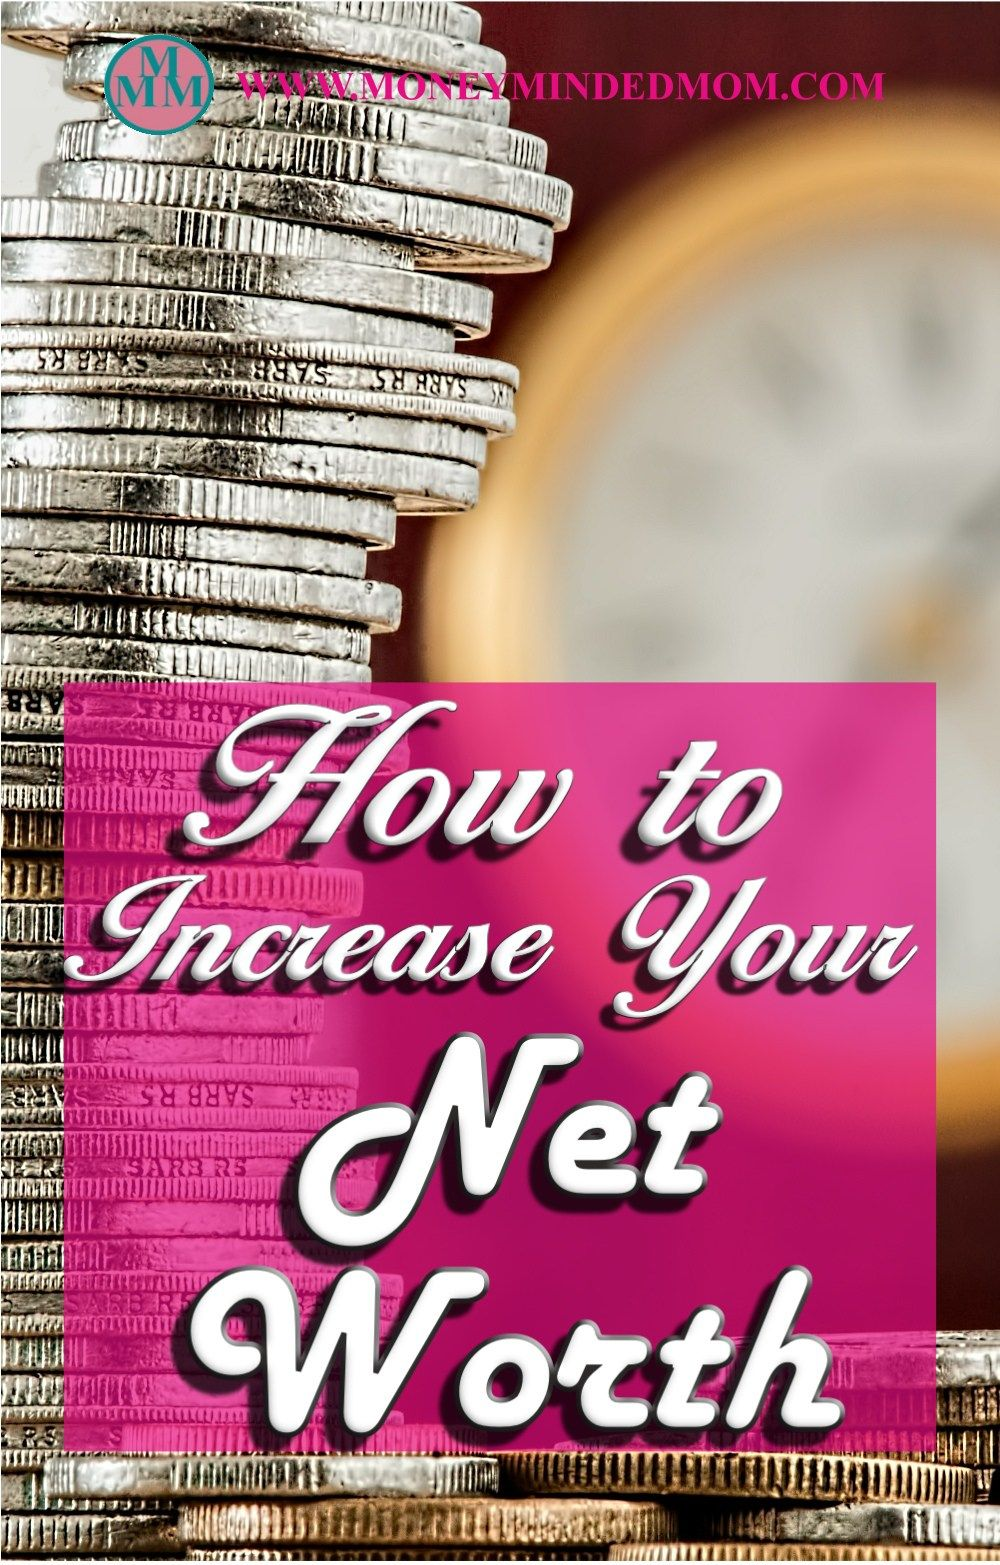 how to increase your net worth learn some easy ways that you can do to increase your net worth and you finances read on to find out how